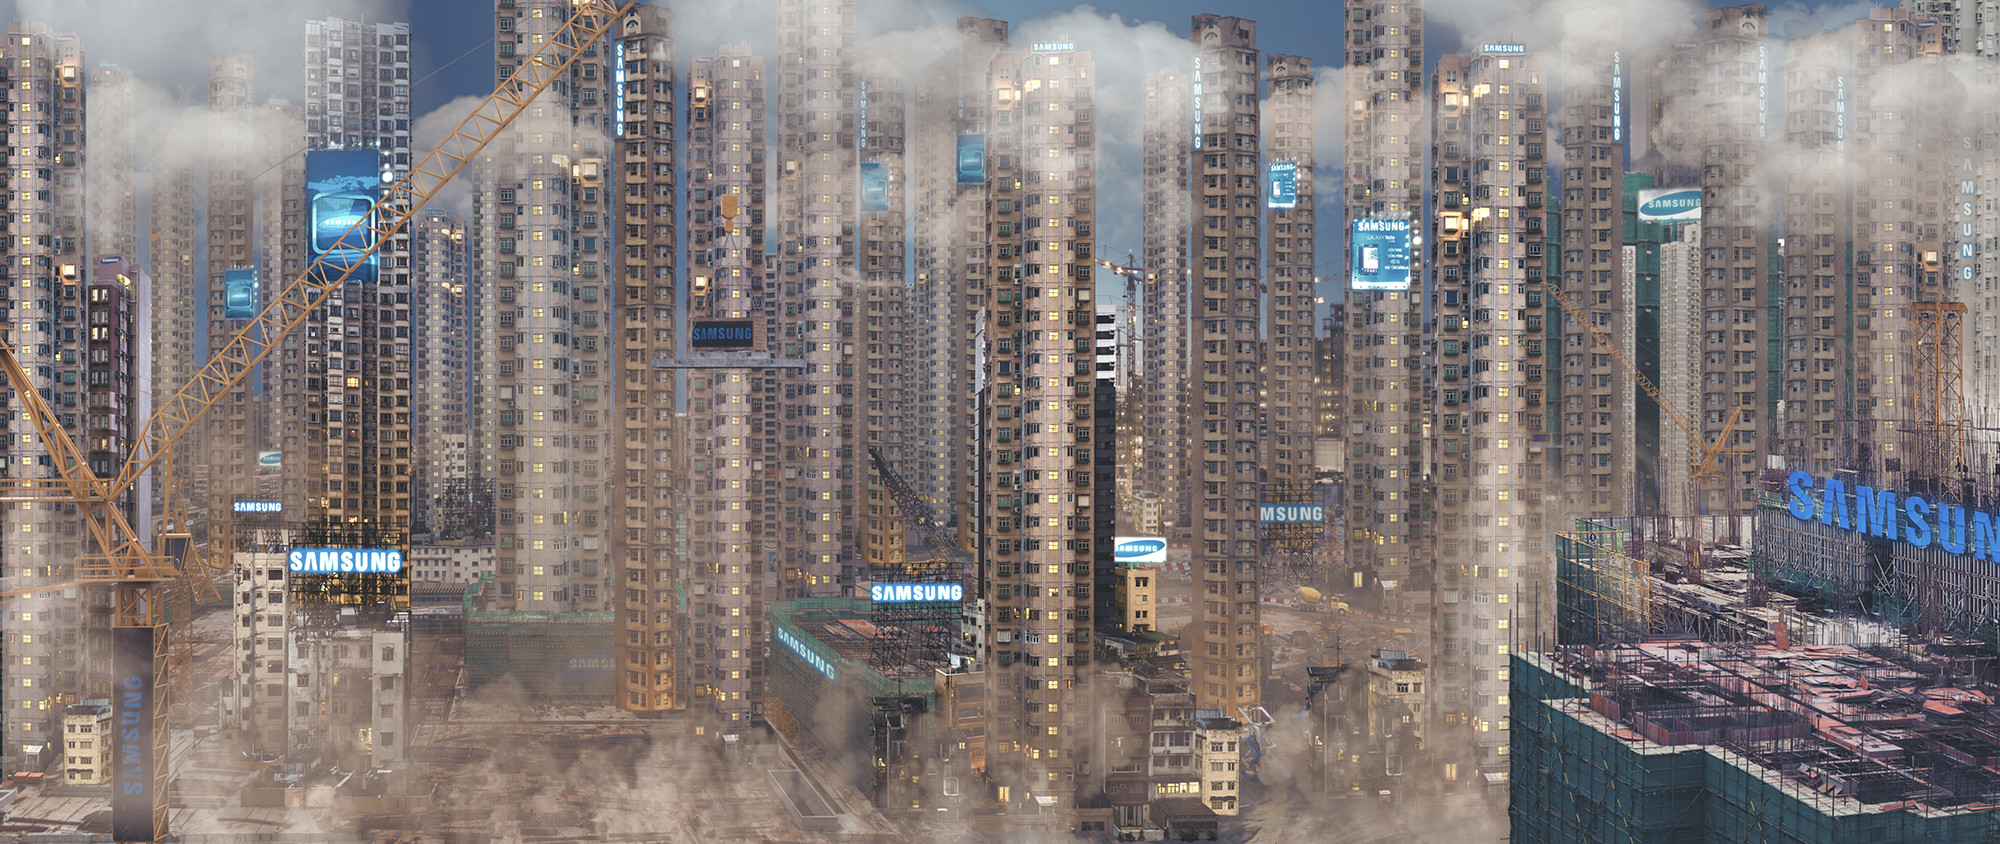 "Corporate Dystopia: Liam Young Imagines a World in which Tech Companies Own Our Cities , From ""Keeping up Appearances"". Image Courtesy of Liam Young"